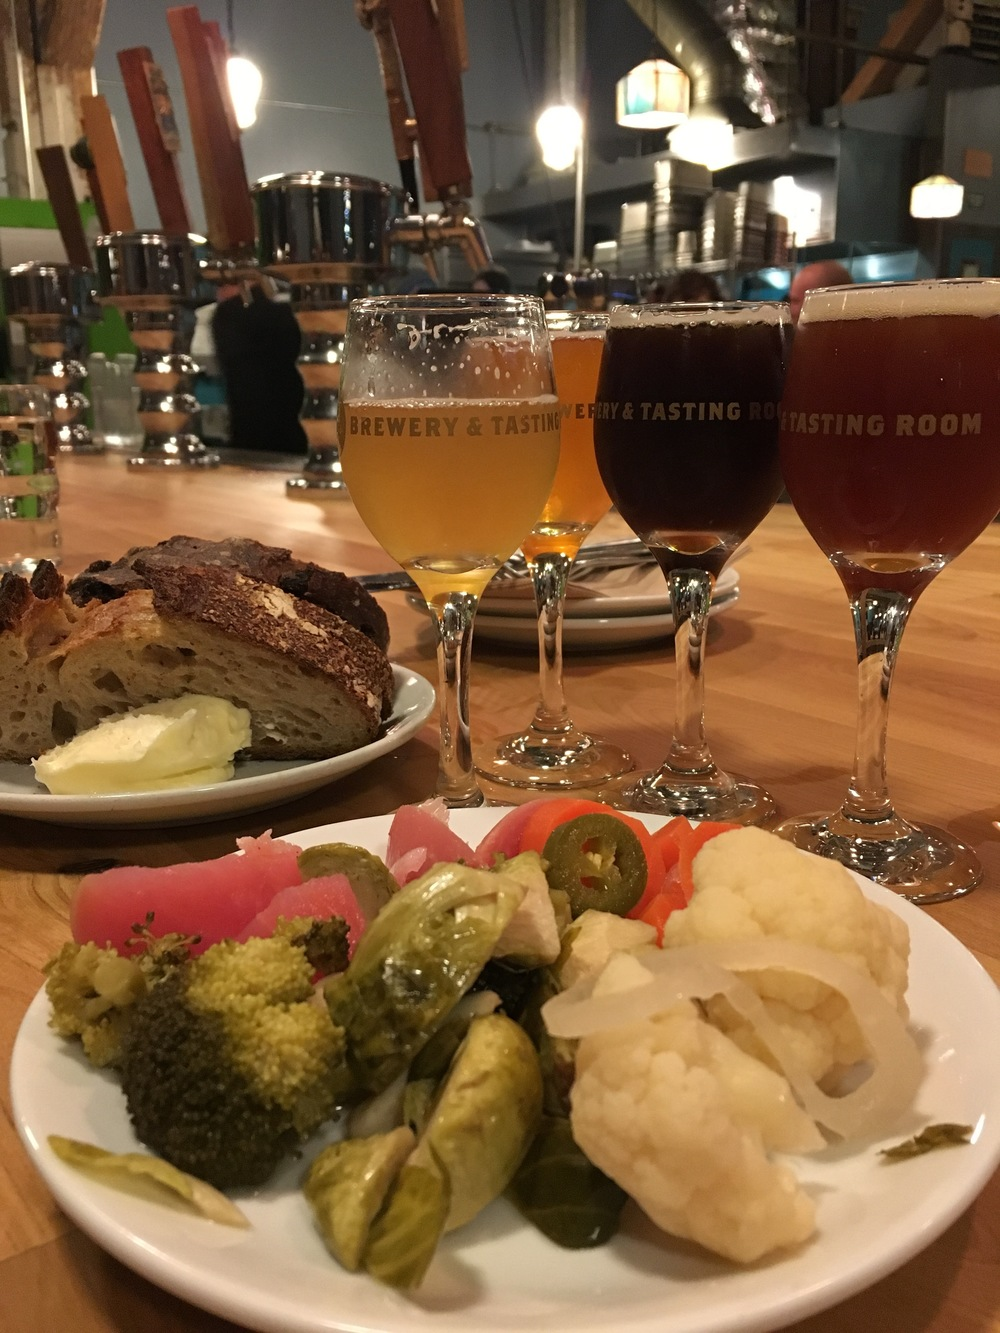 bread & butter, pickled veggies, and flight at Hair of the Dog Brewery